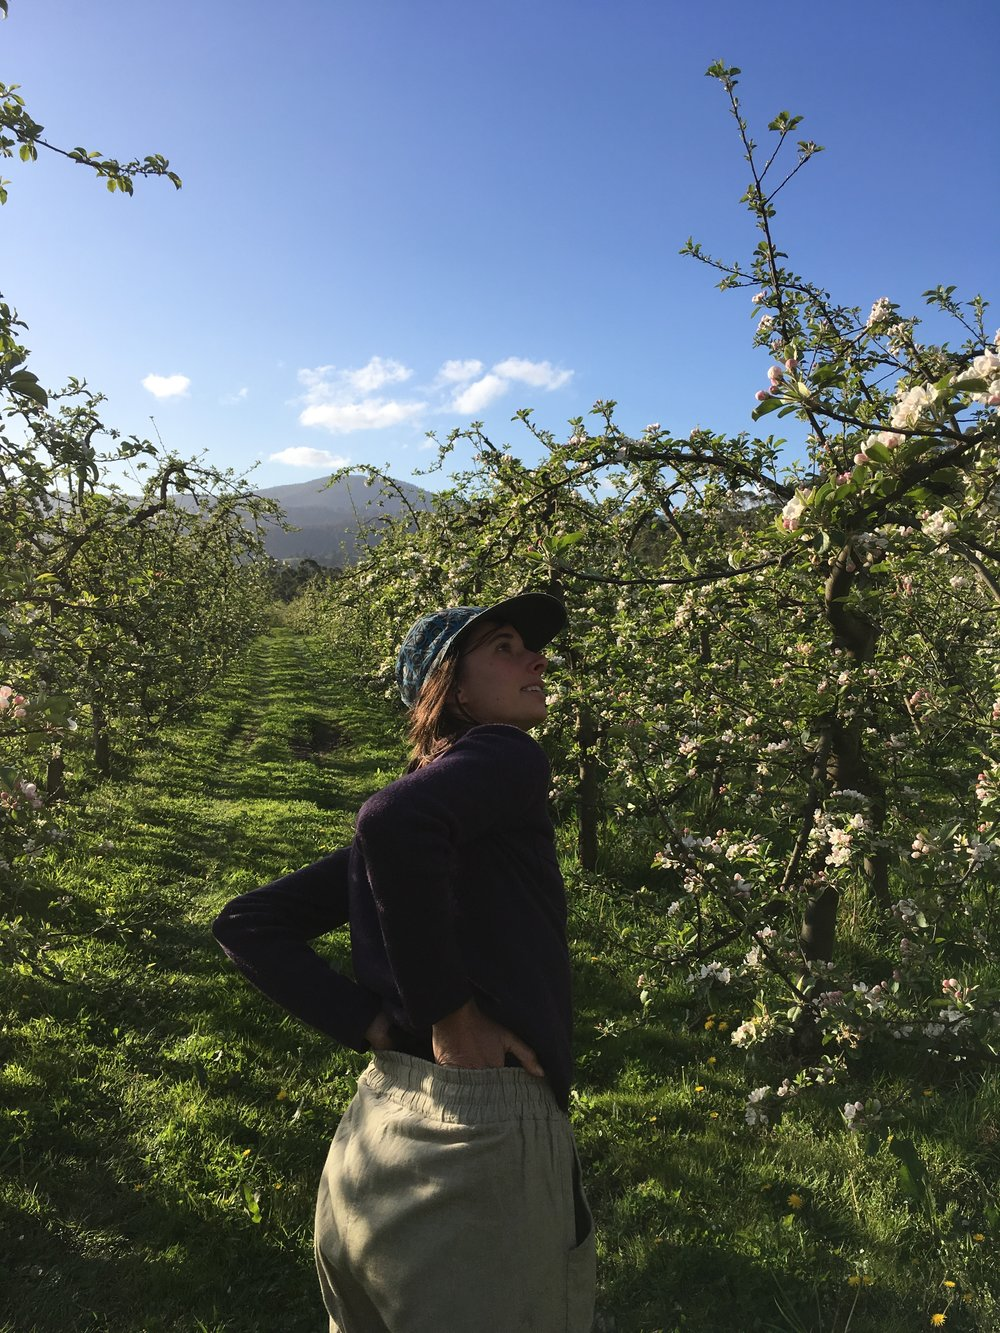 Pollination in Tasmanian fruit crops and market gardens - This project aims to develop an understanding of which insect pollinators play key roles in agricultural pollination networks in apple, blueberry and market gardens.